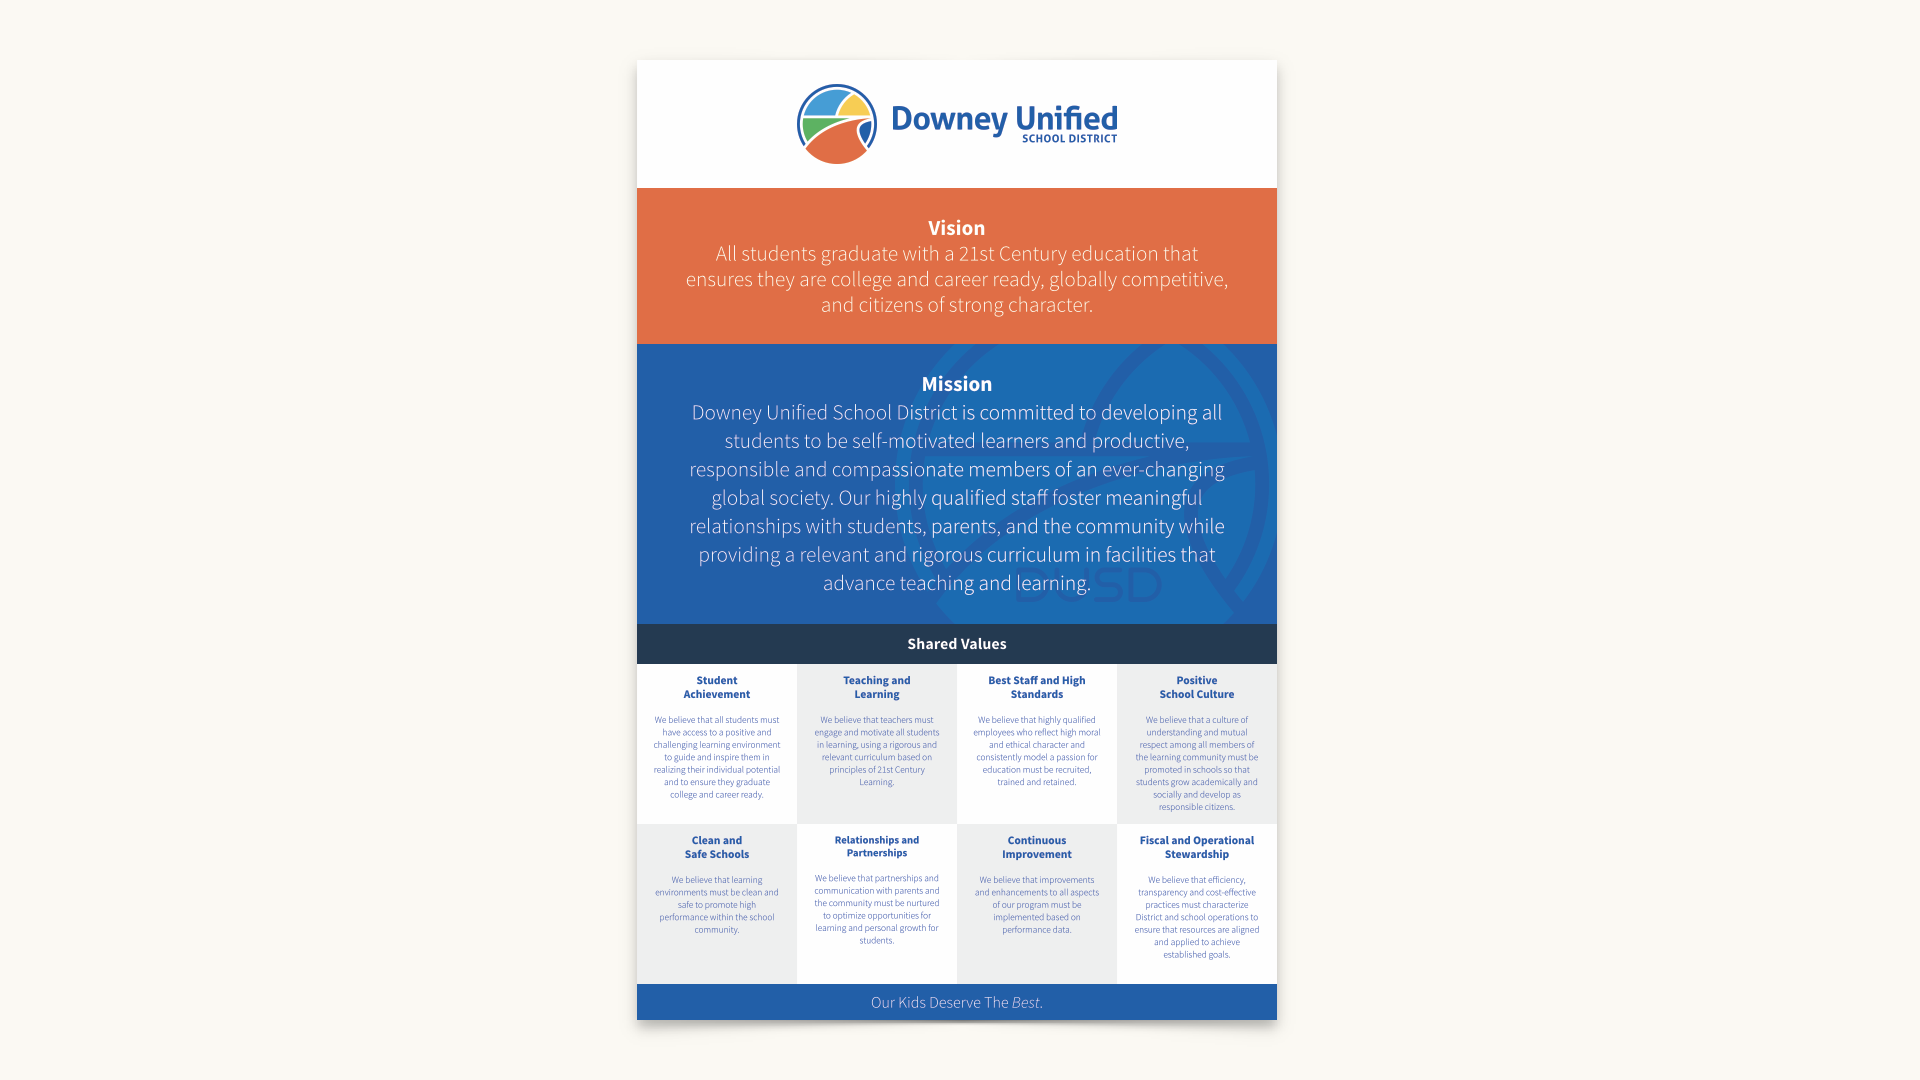 Downey Unified School District – Vision, Mission & Shared Values Poster